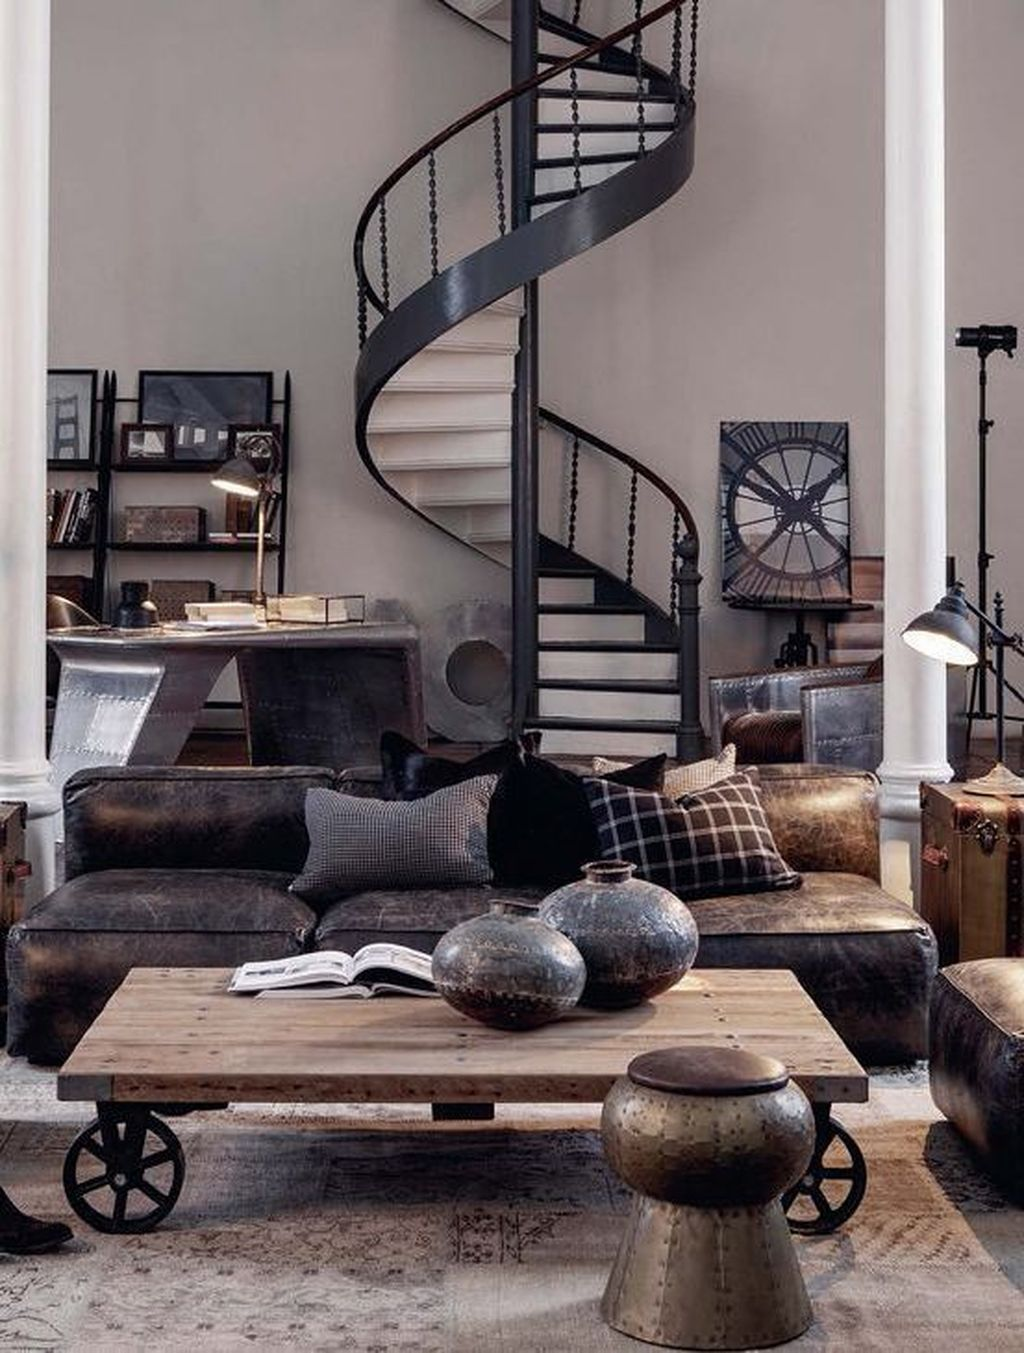 Pin By Sanela Hs On Hus Industrial Style Living Room Rustic Industrial Living Room Industrial Loft Design